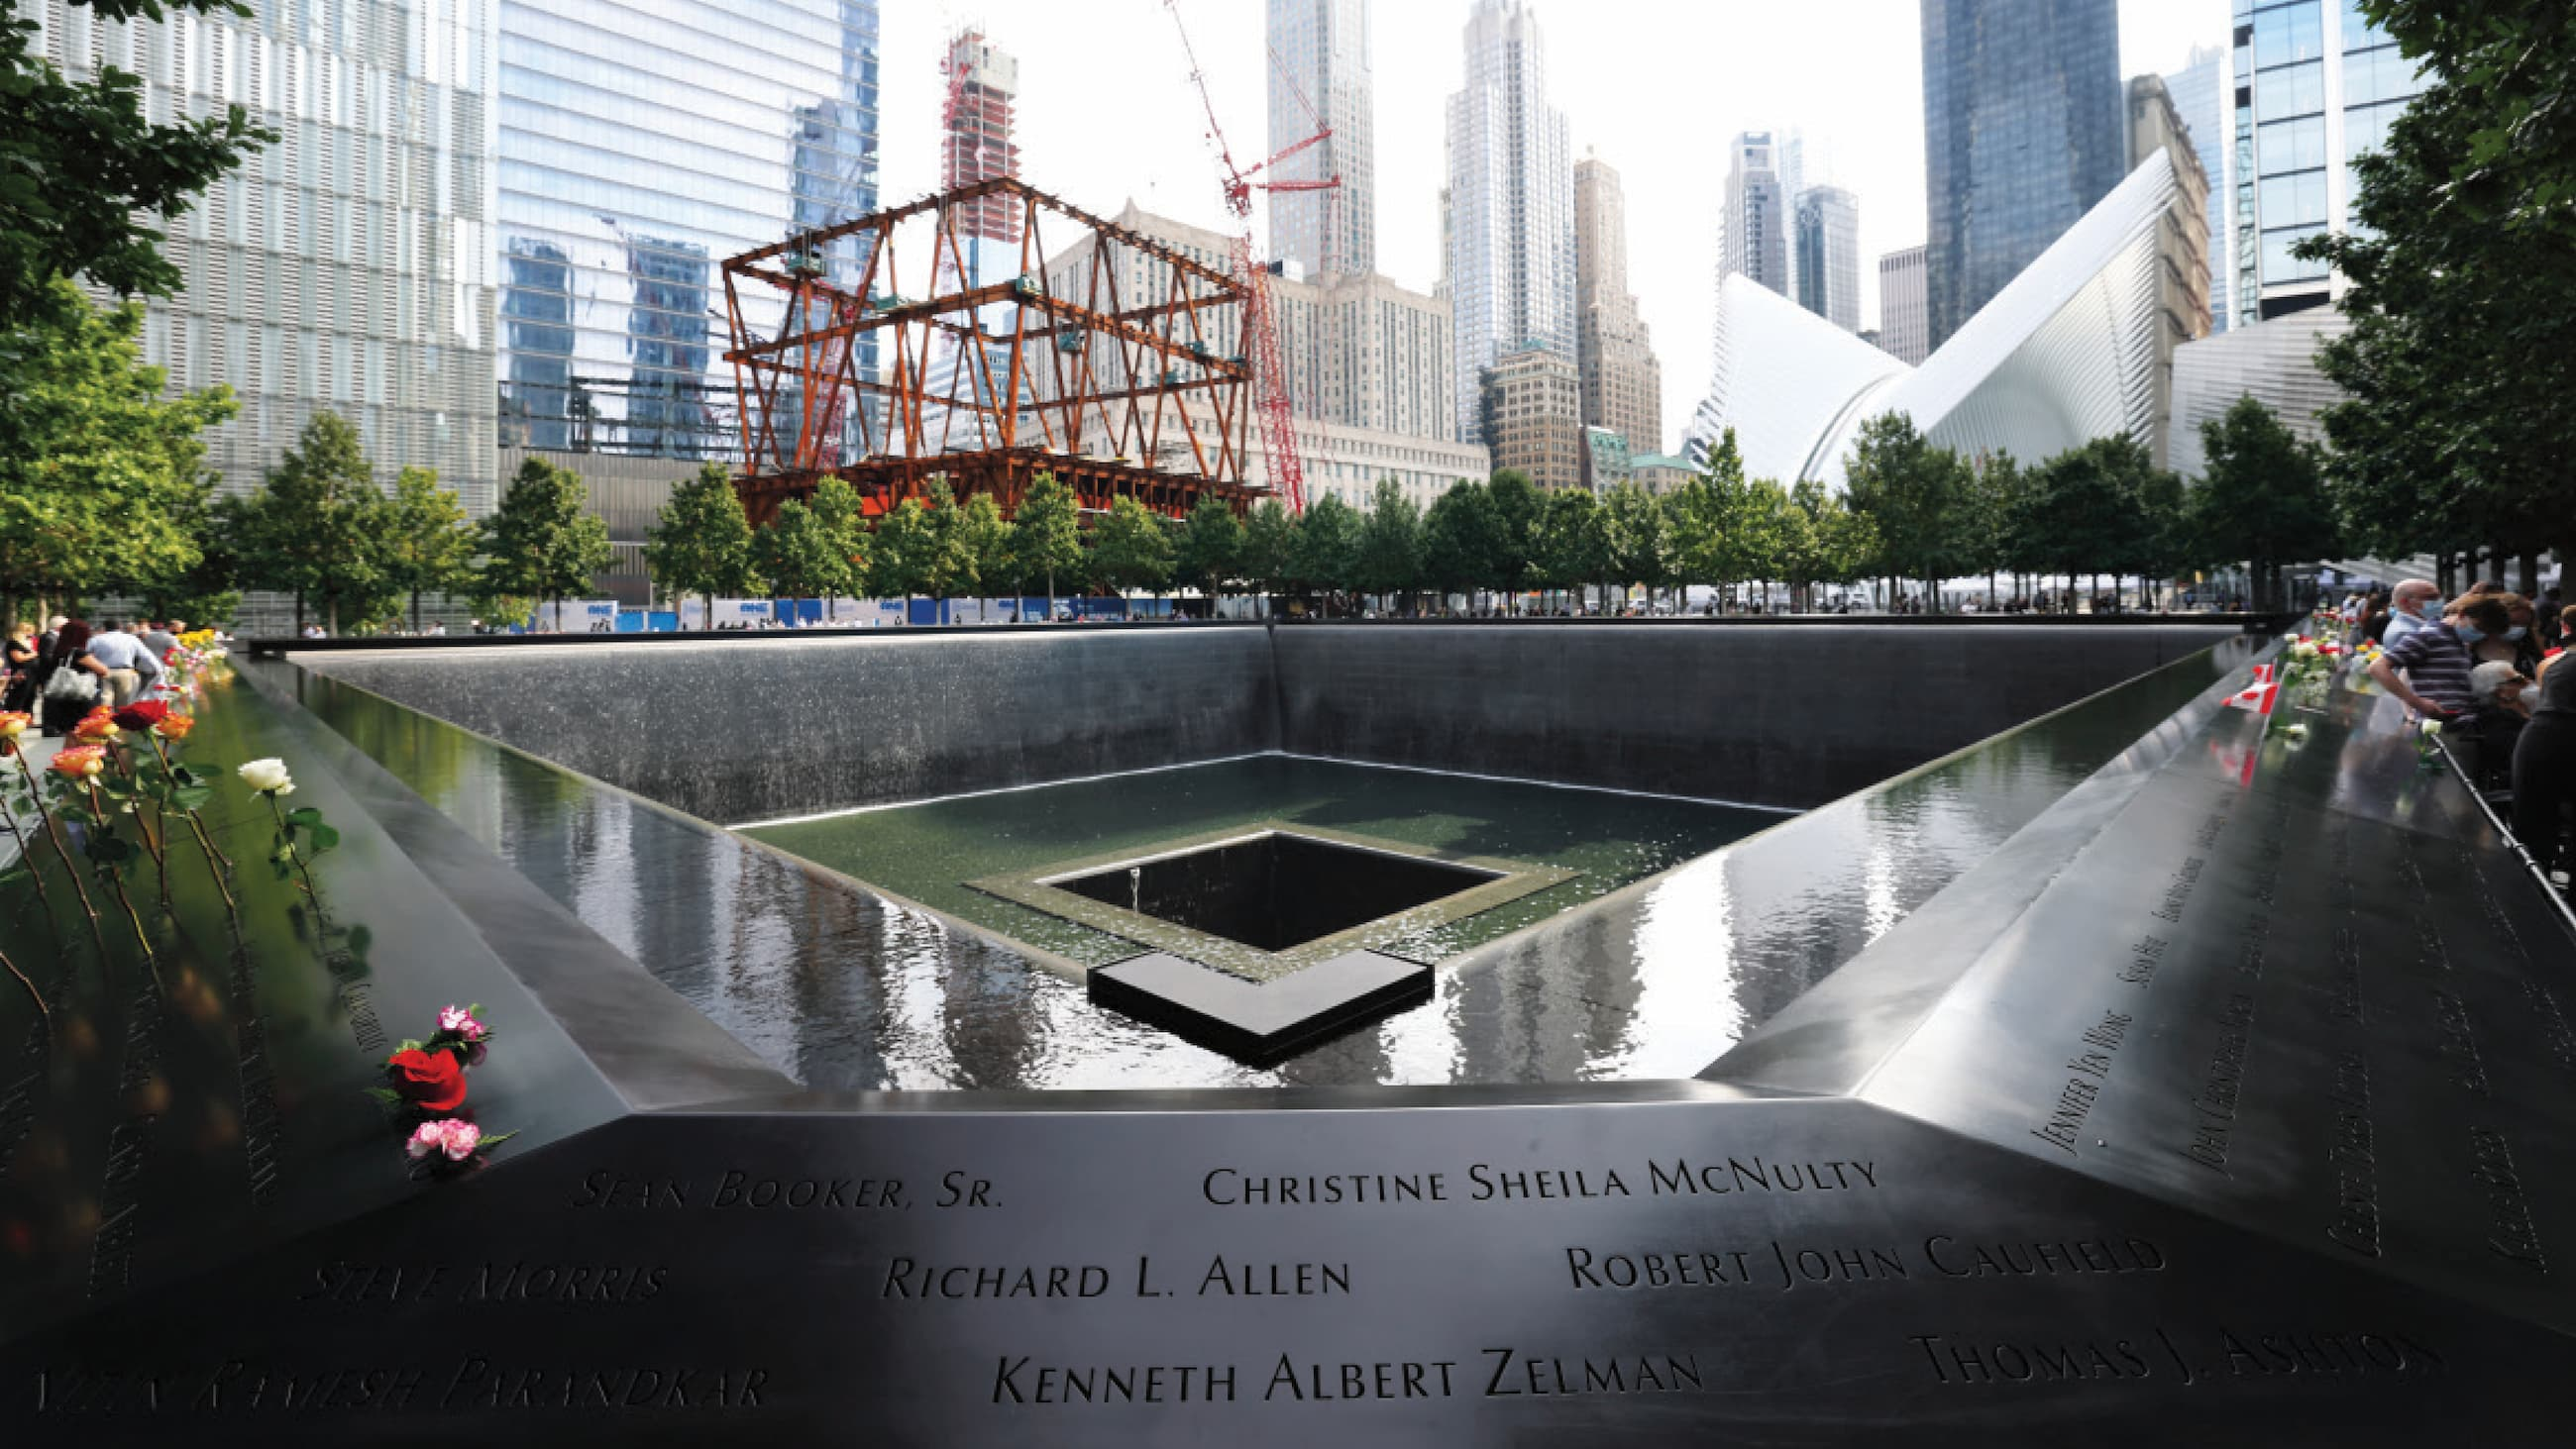 The 9/11 Memorial with the Ronald O. Perelman Performing Arts Centerrising in the background.